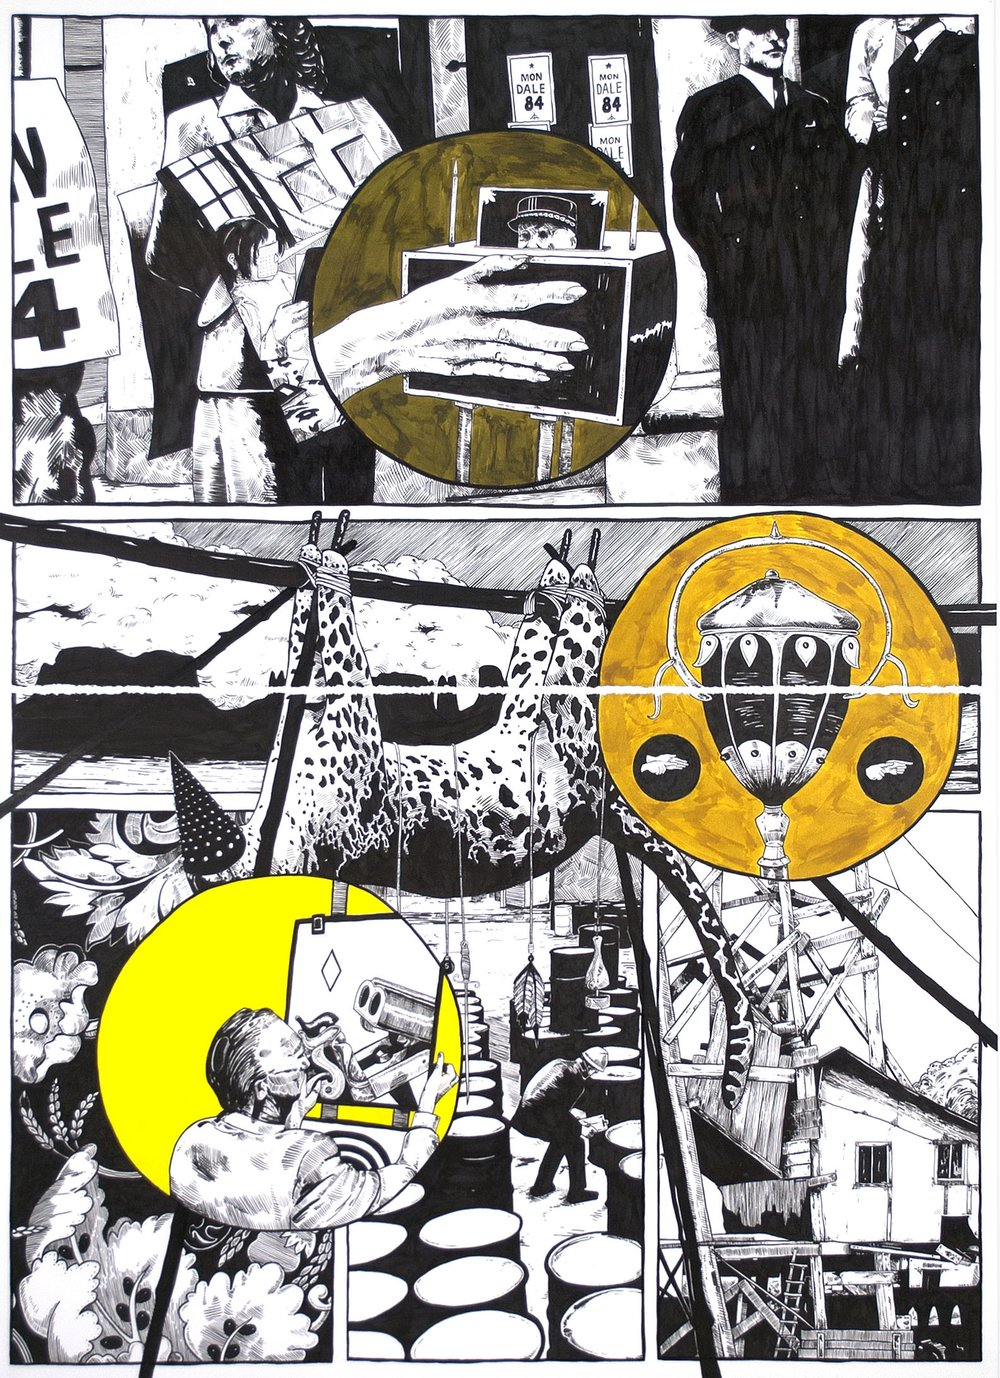 "Lower Than the Lowest Animal #8  , 2014   60 x 44"" (diptych), india ink on paper"